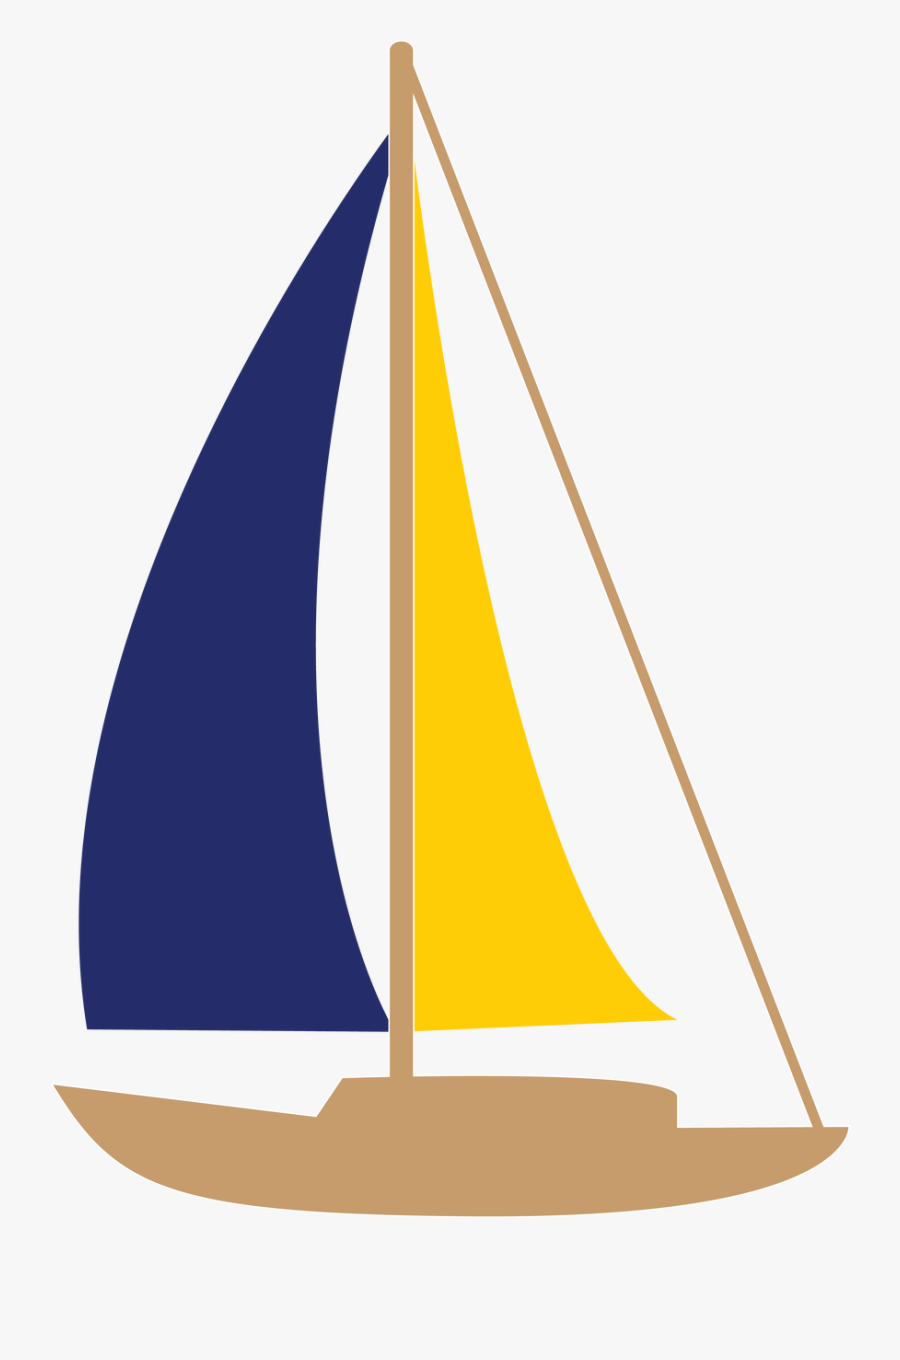 Sailboat Svg Cut File - Sail, Transparent Clipart